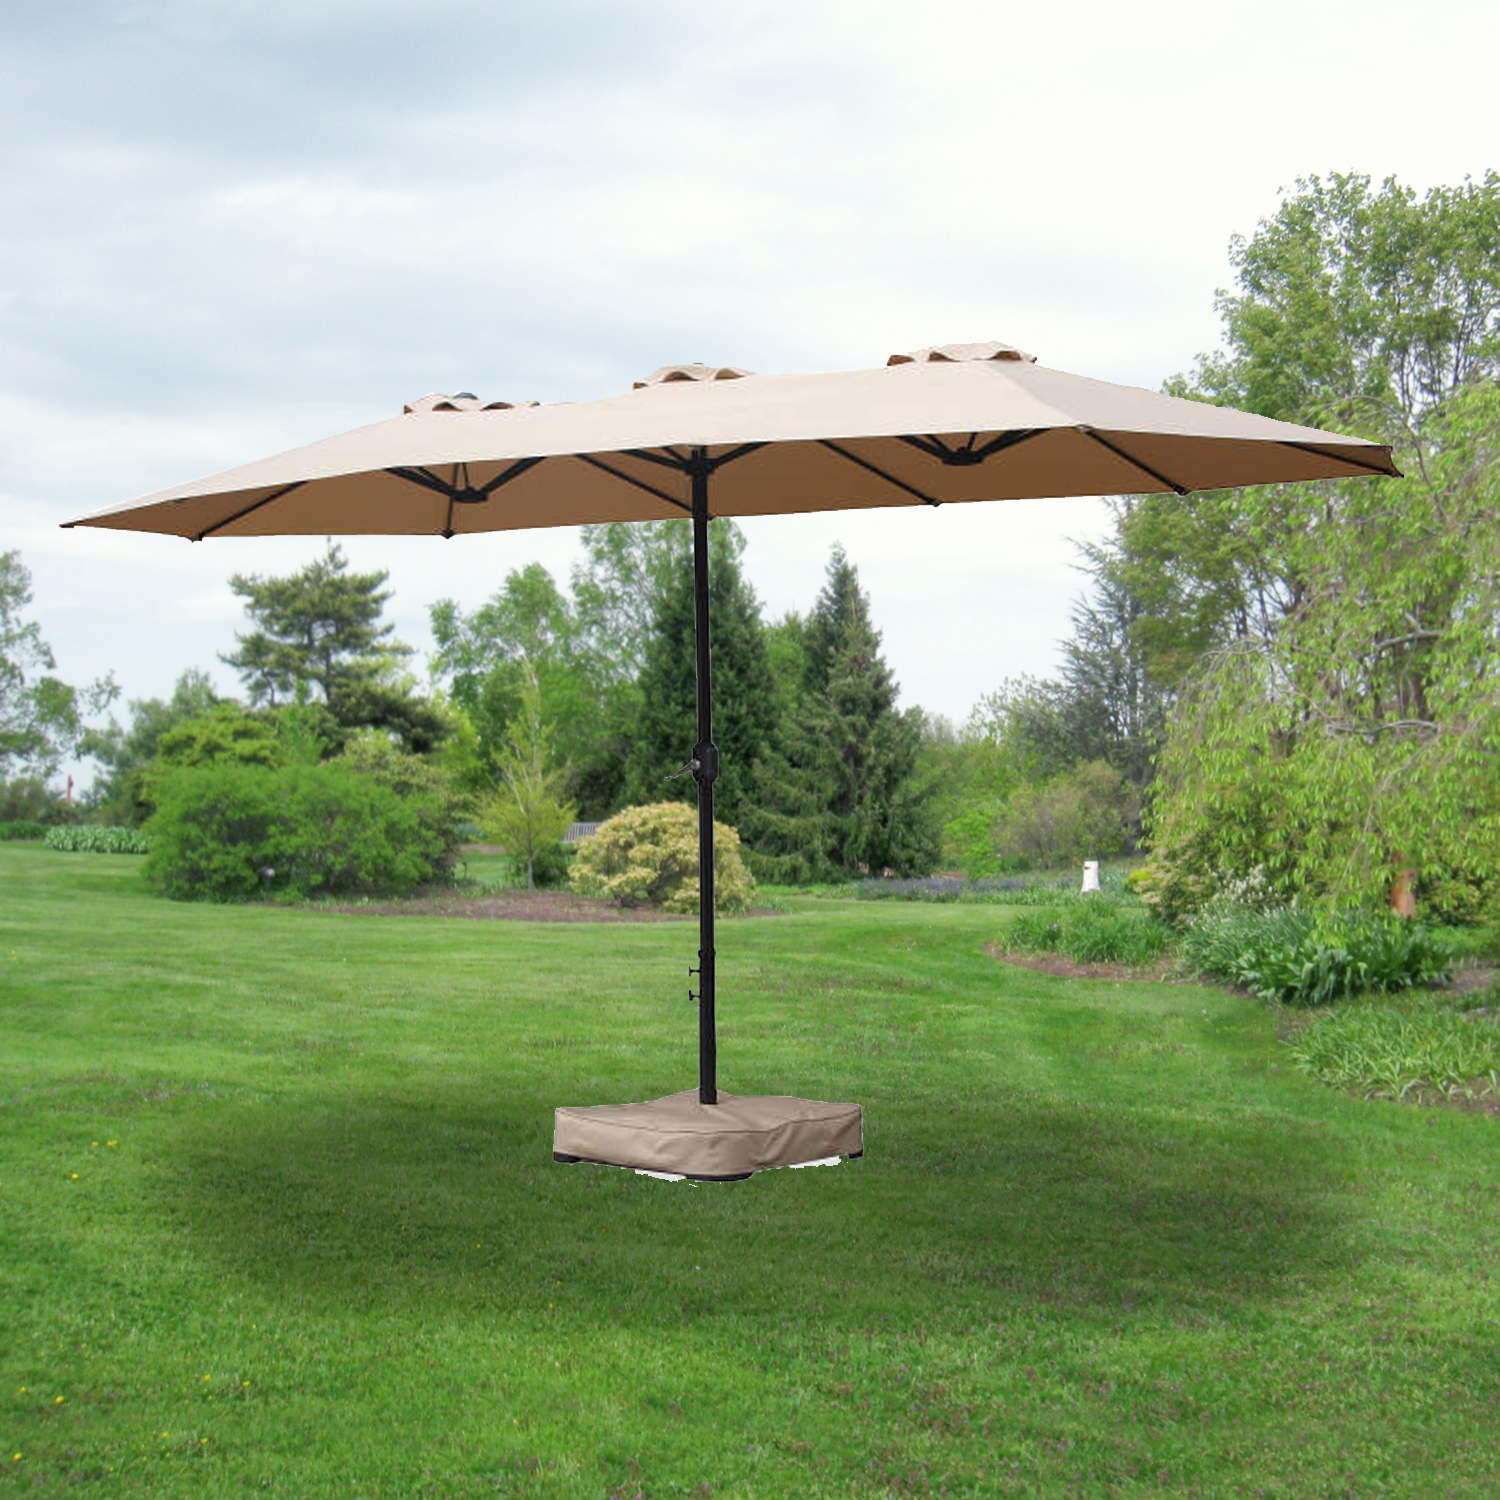 Garden Winds Replacement Canopy for the 15ft Triple Umbrella, 350